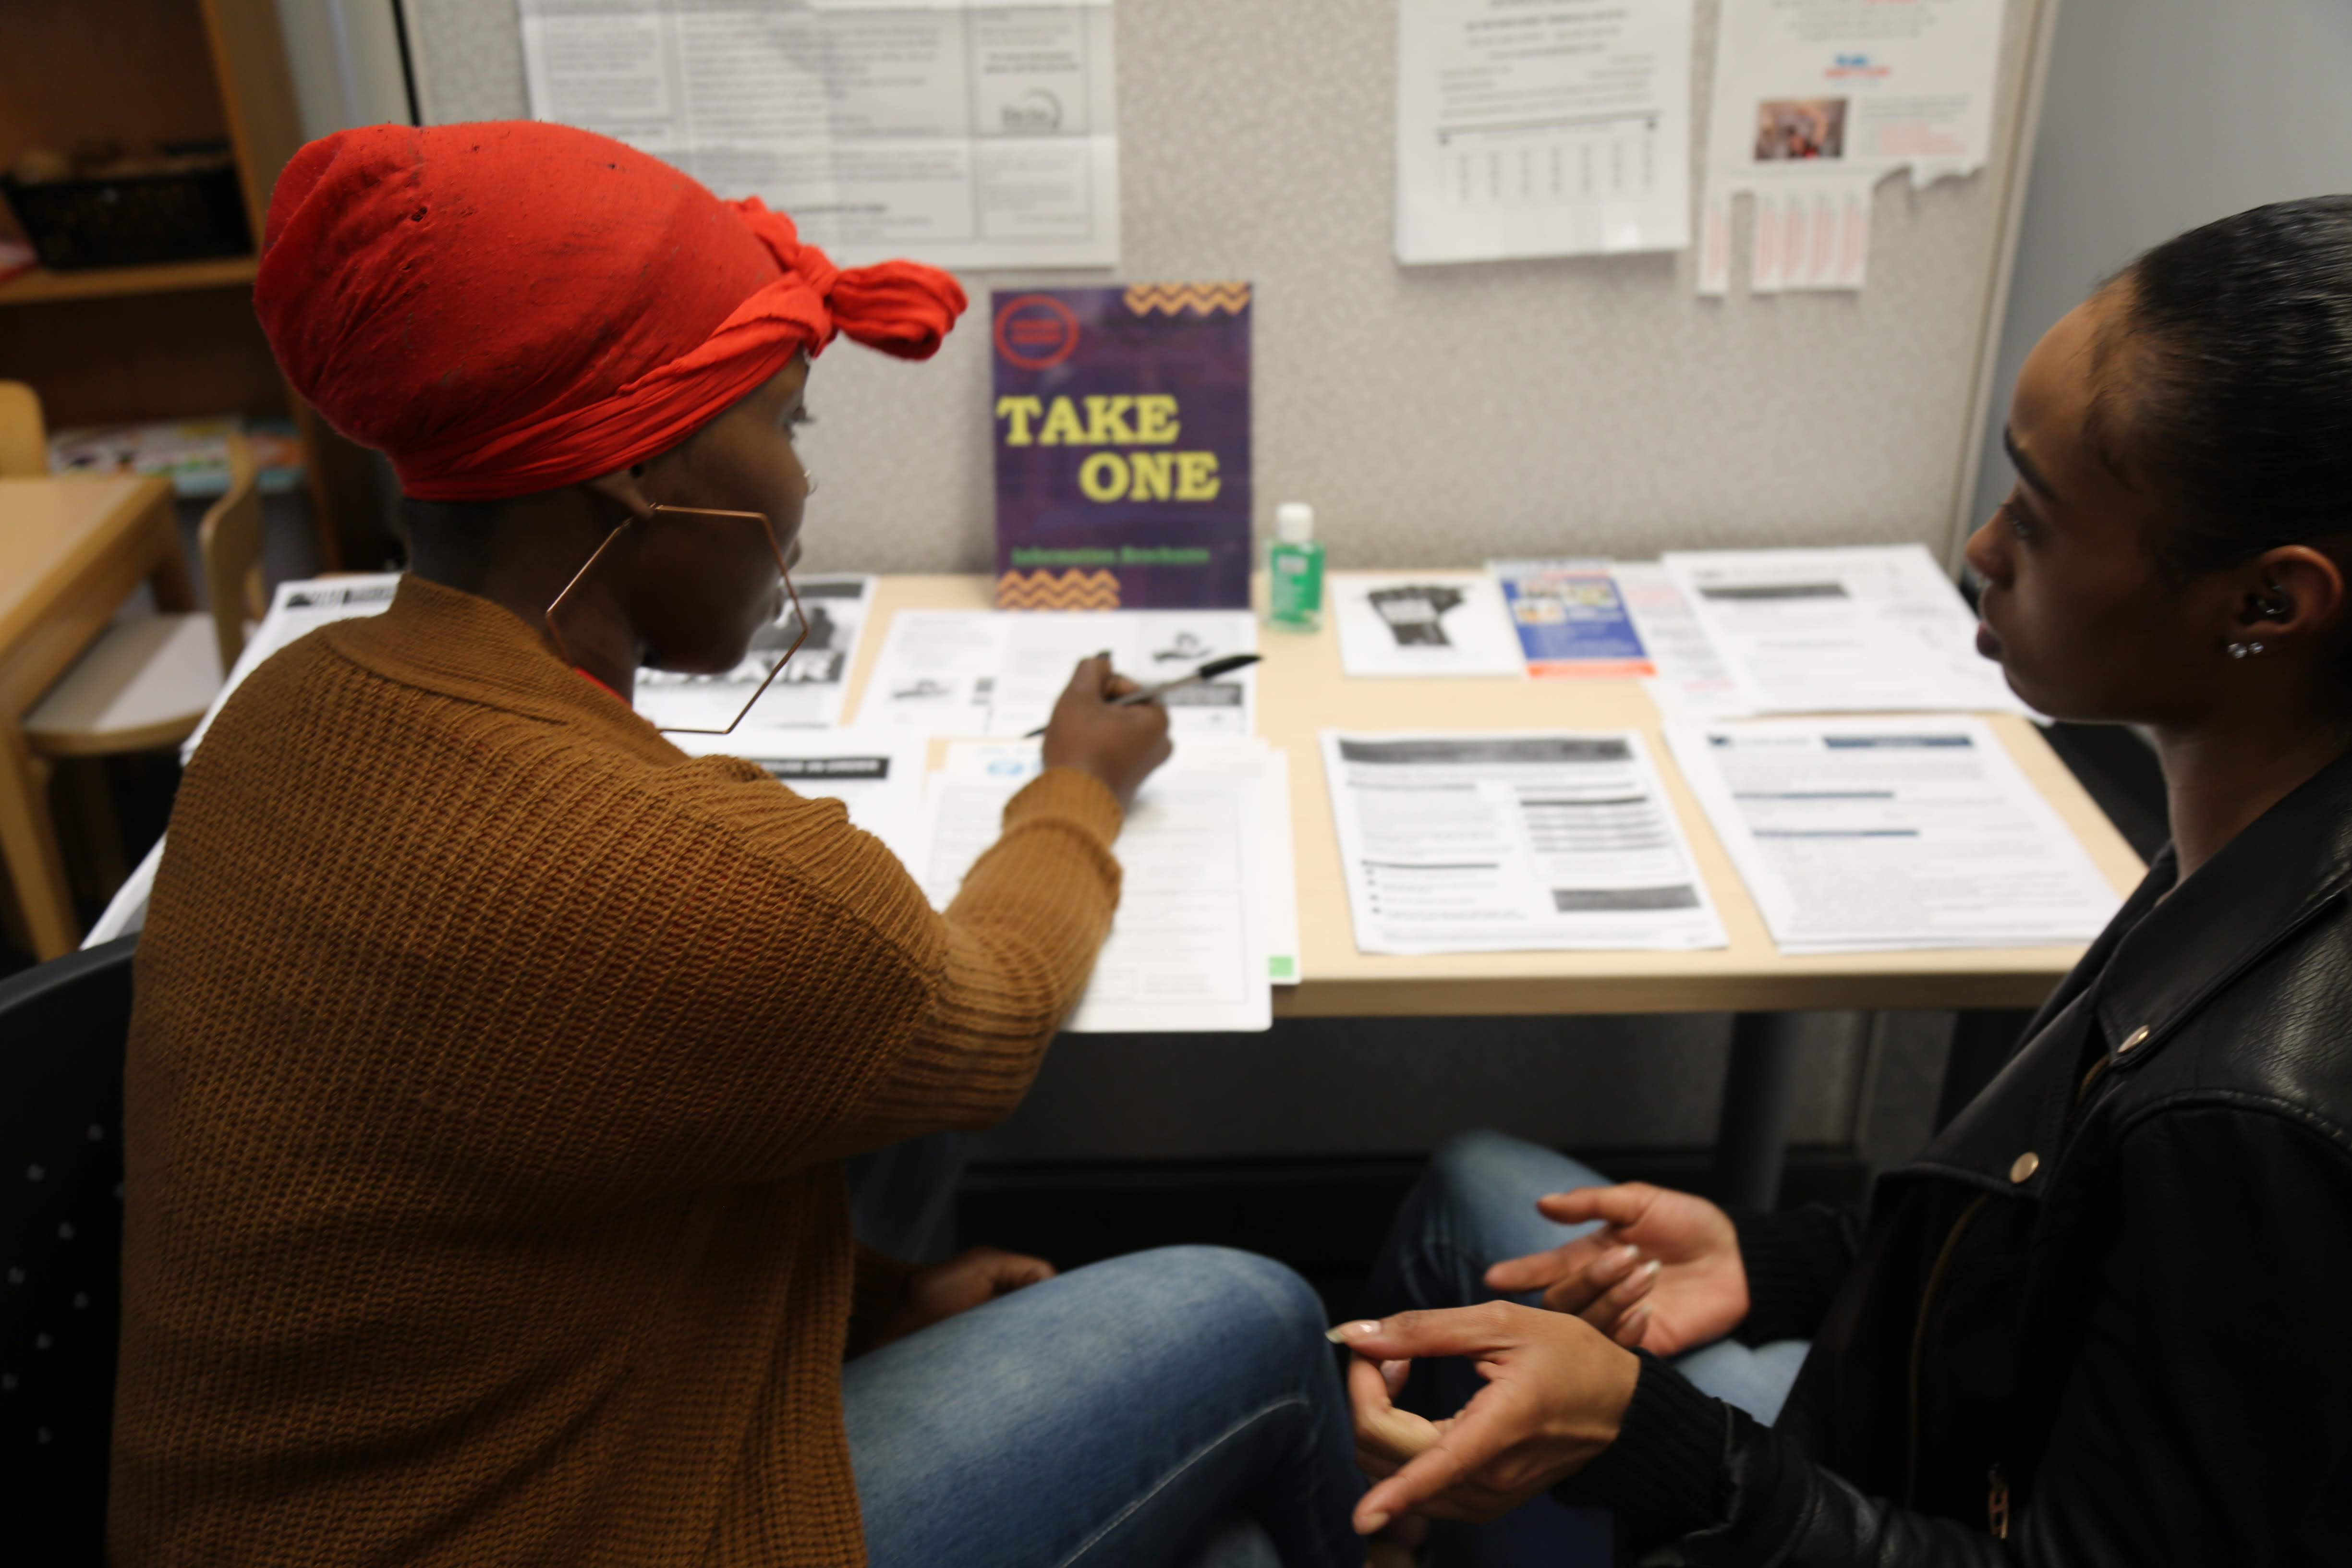 Two women discuss options in our Urban League resource center